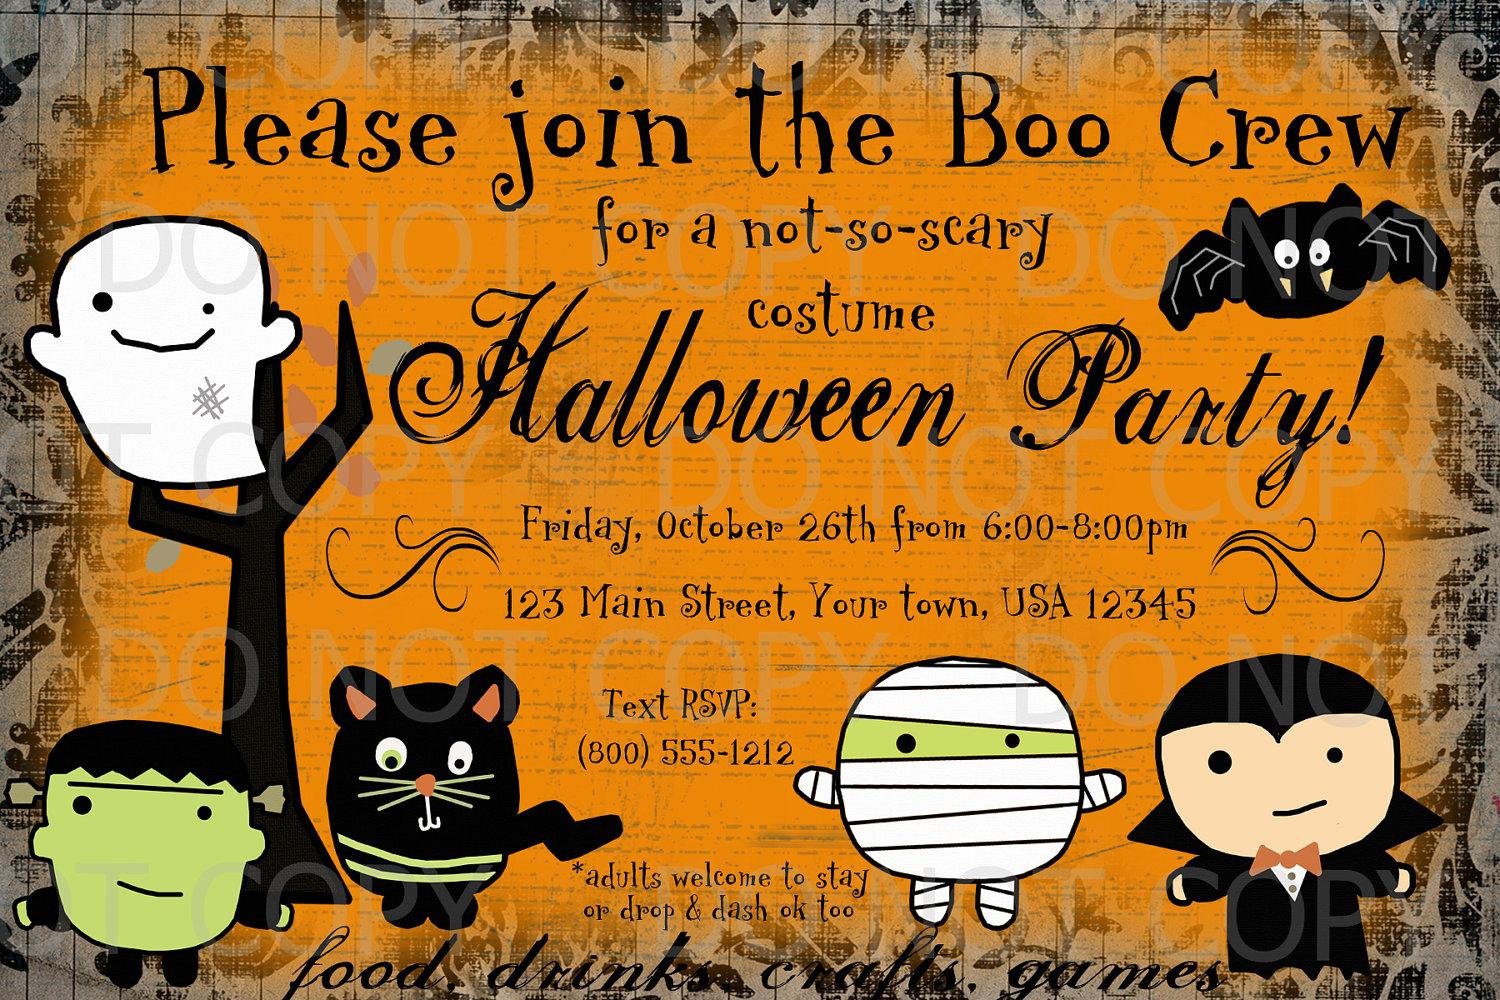 doc printable halloween party invitations templates printable halloween party invitation templates mickey mouse printable halloween party invitations templates